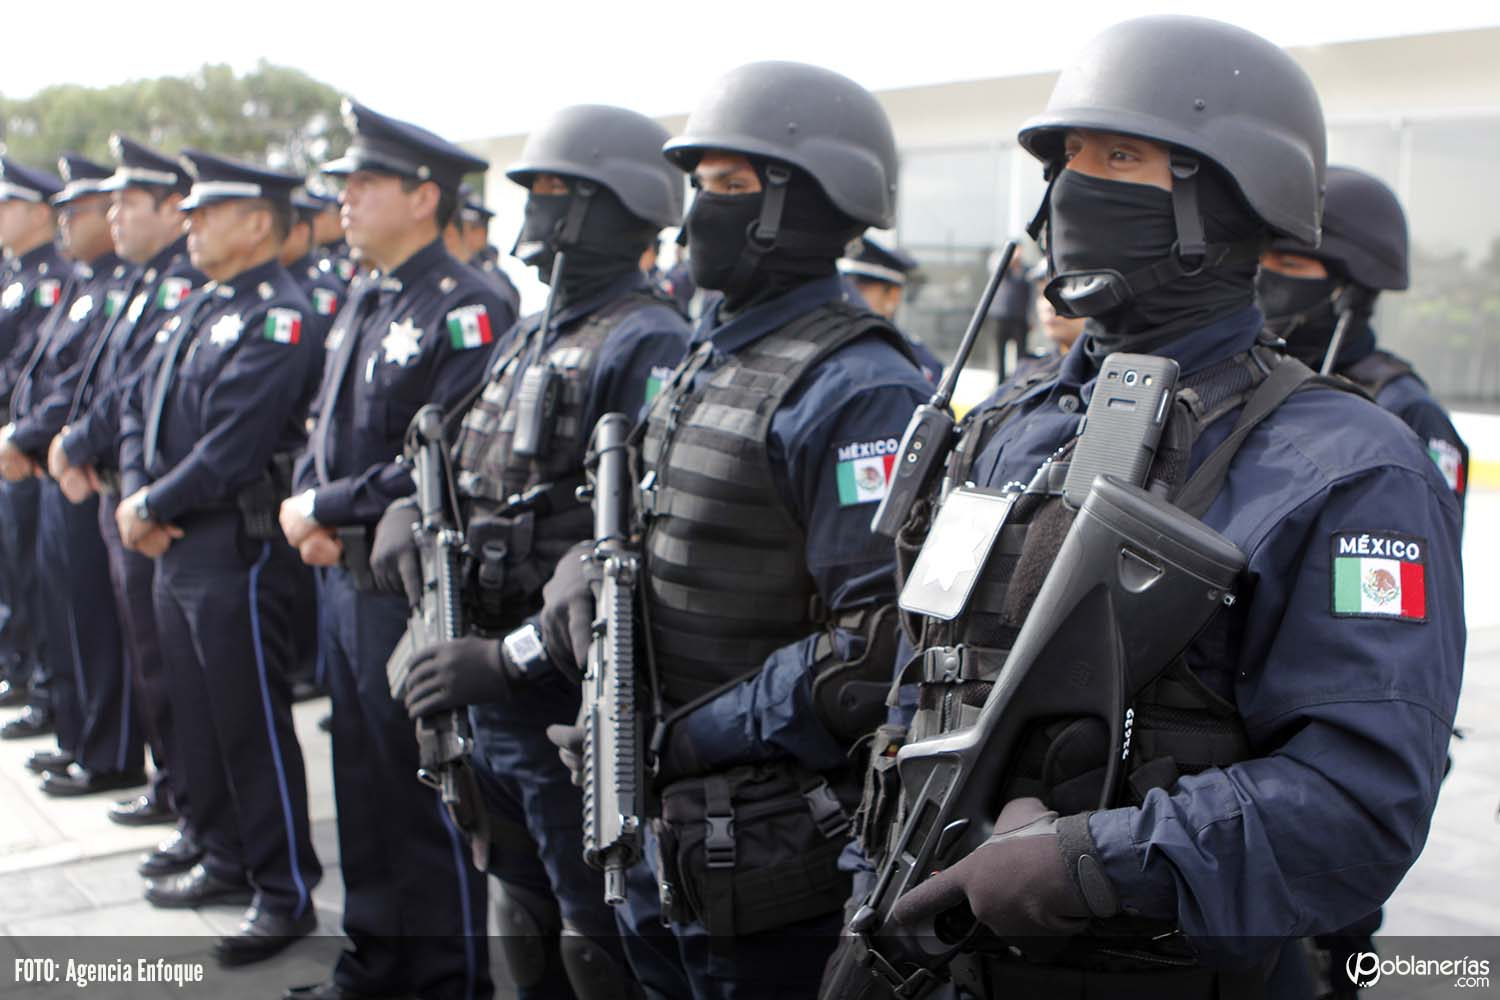 Being a policeman in Mexico